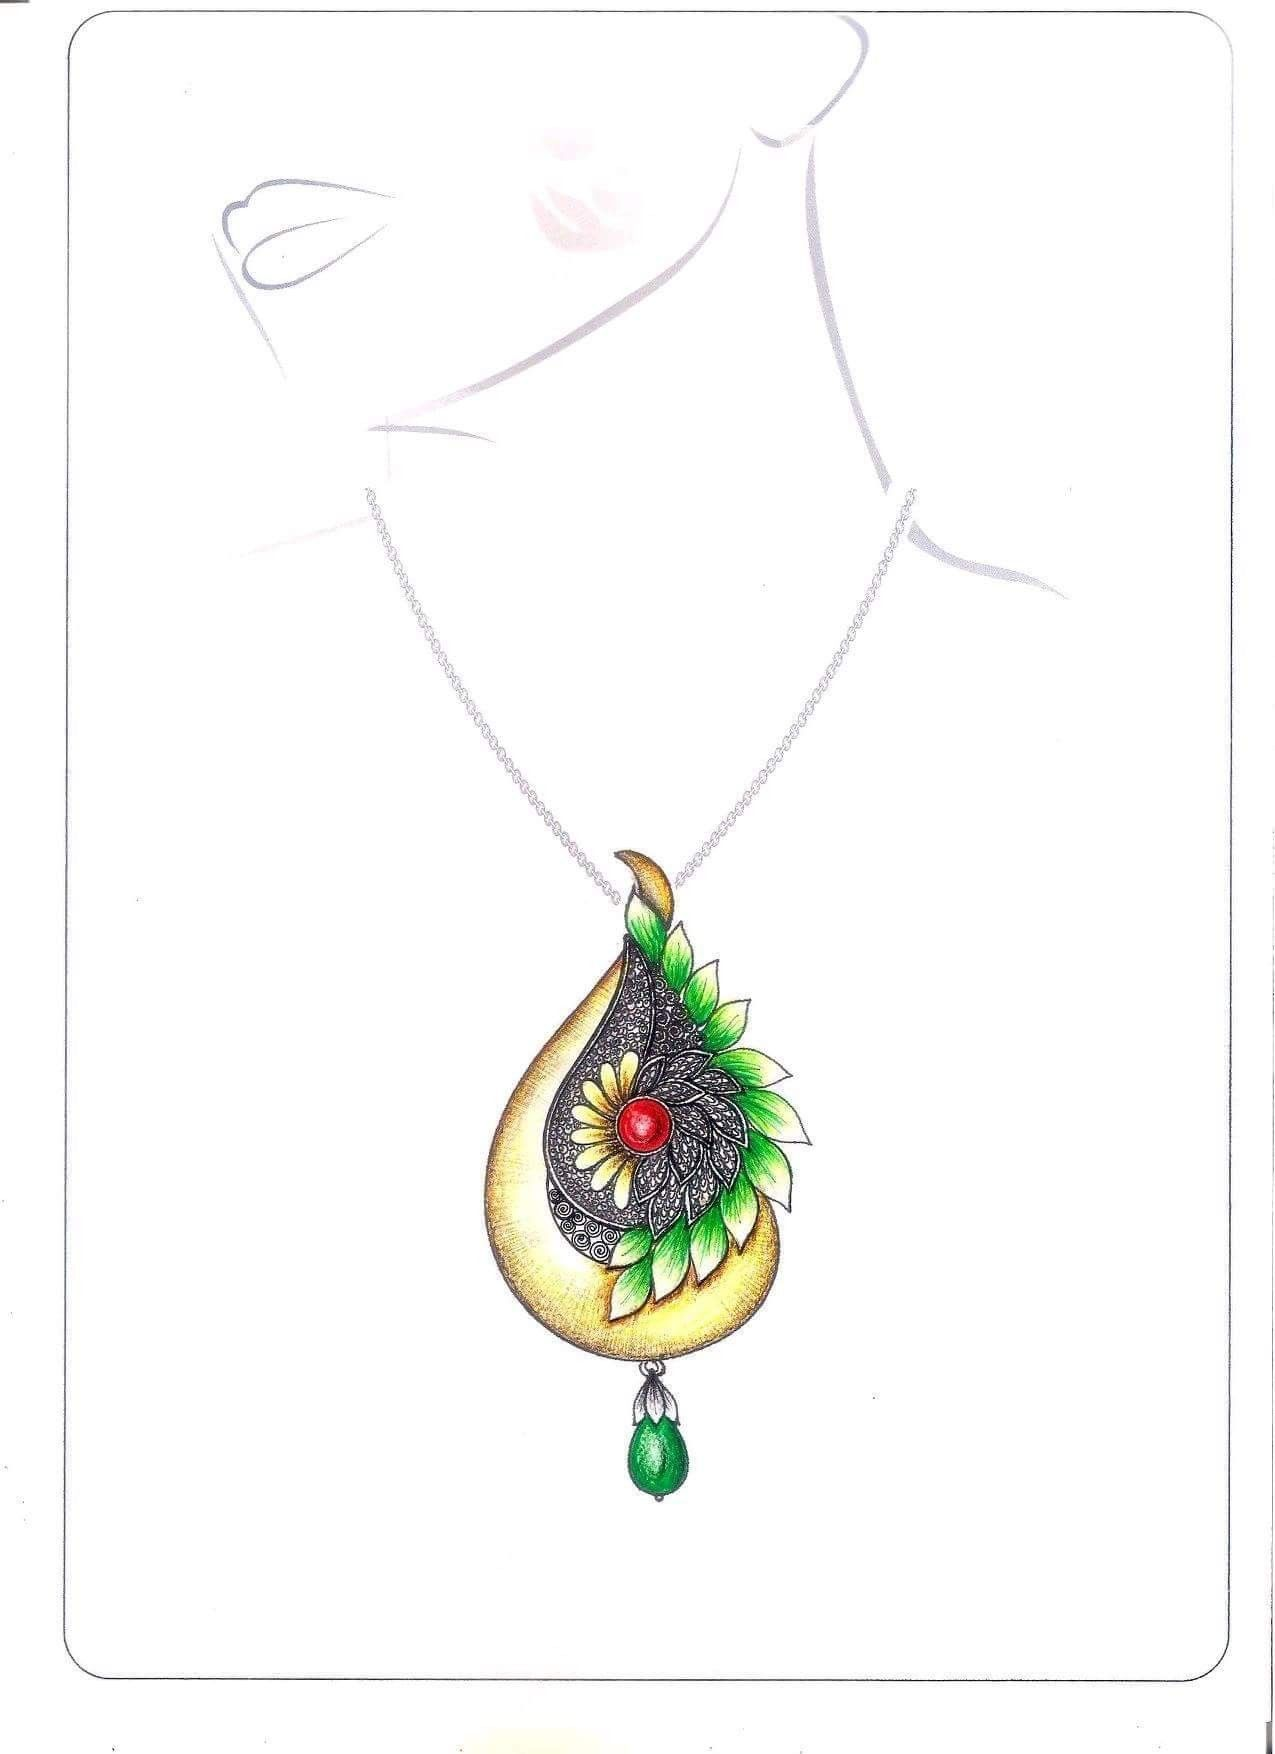 Pin By Melike On Cizim Jewelry Design Drawing Jewellery